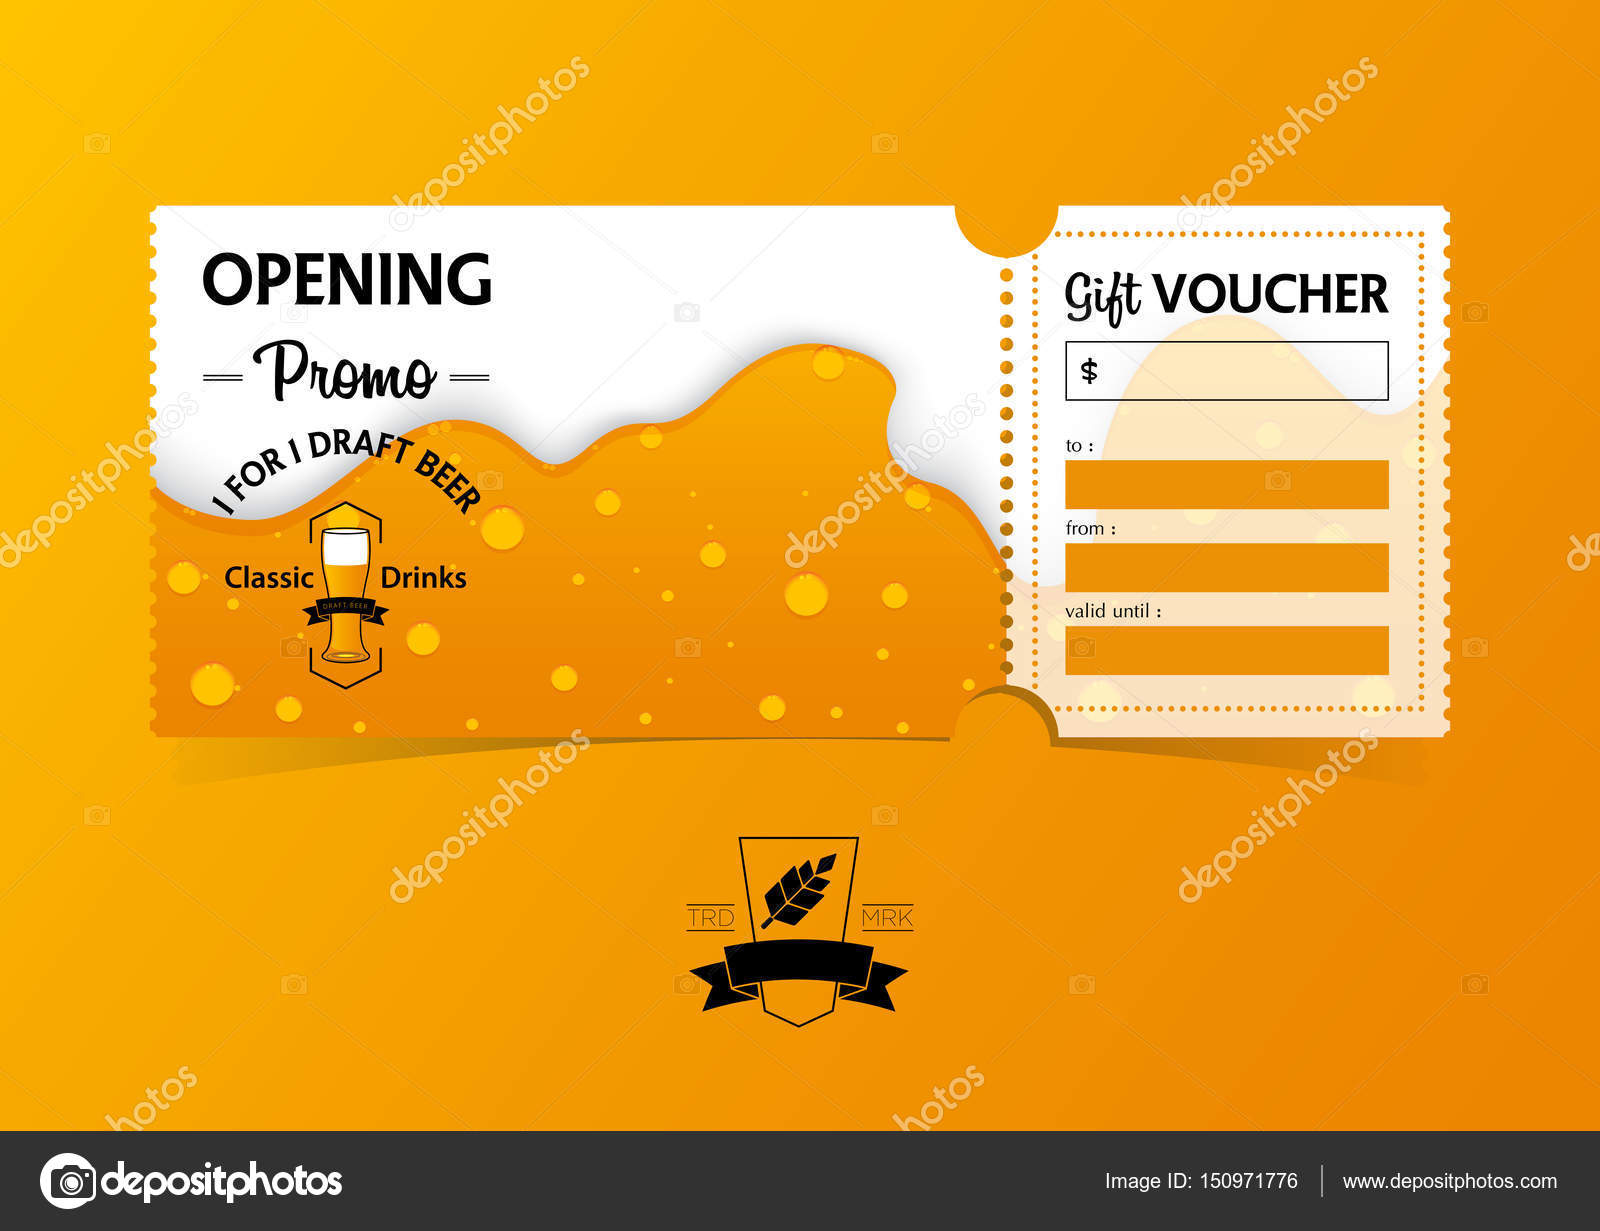 Discount gift vouchers template design for opening beer party ...